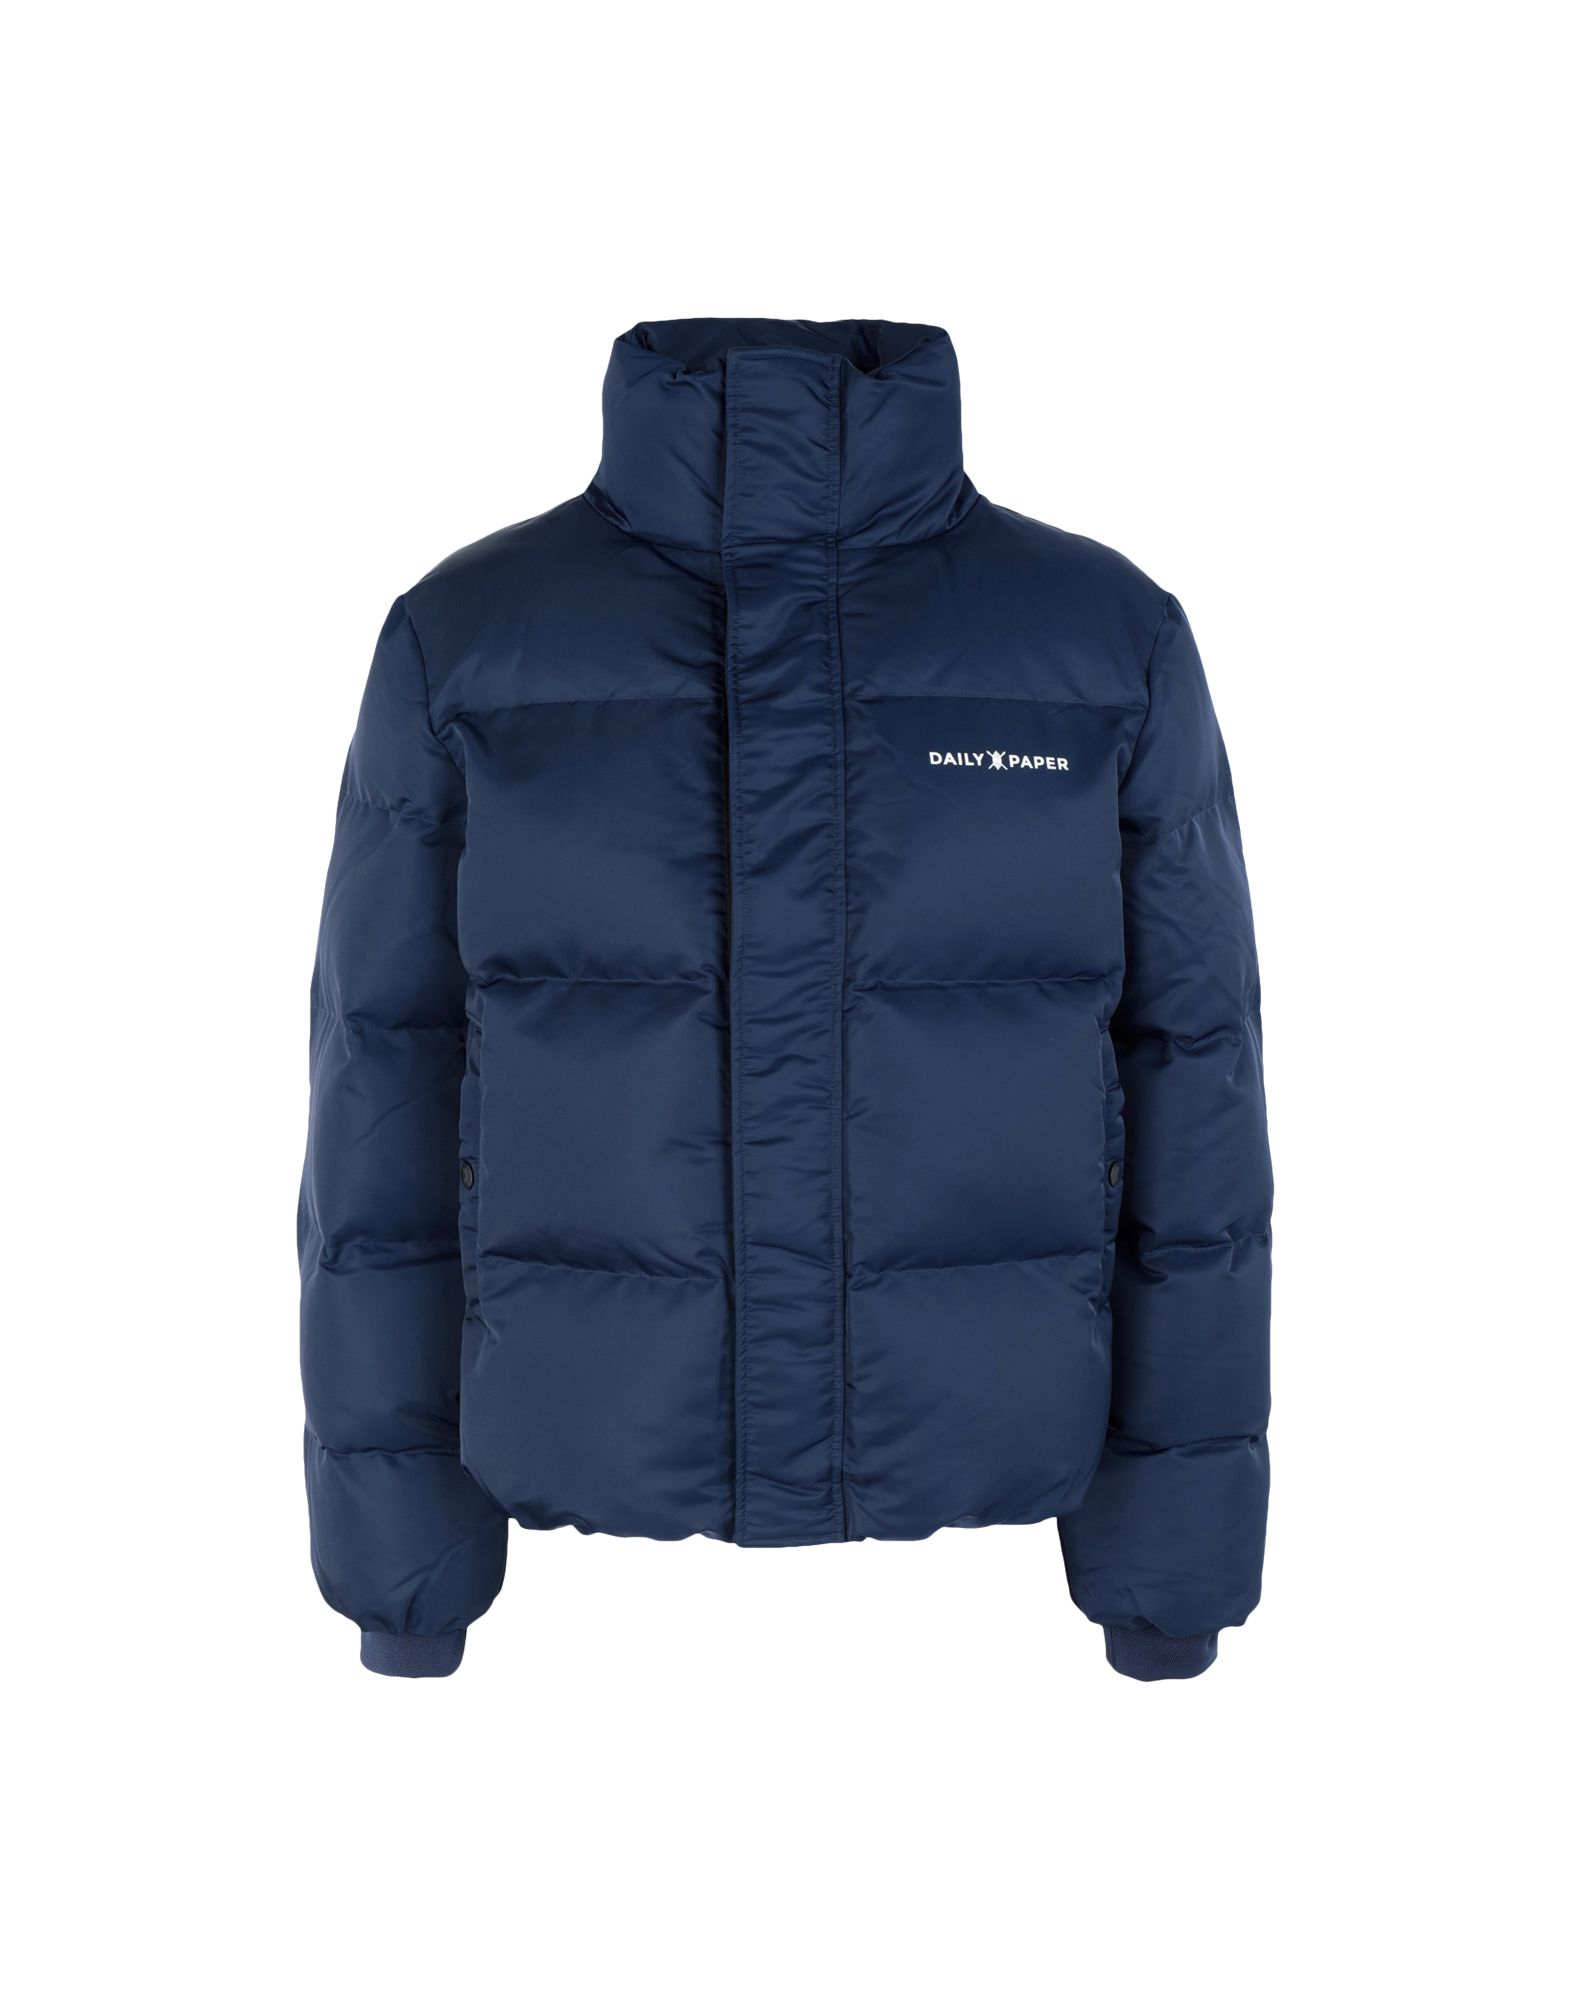 DAILY PAPER Synthetic Down Jackets in Blue